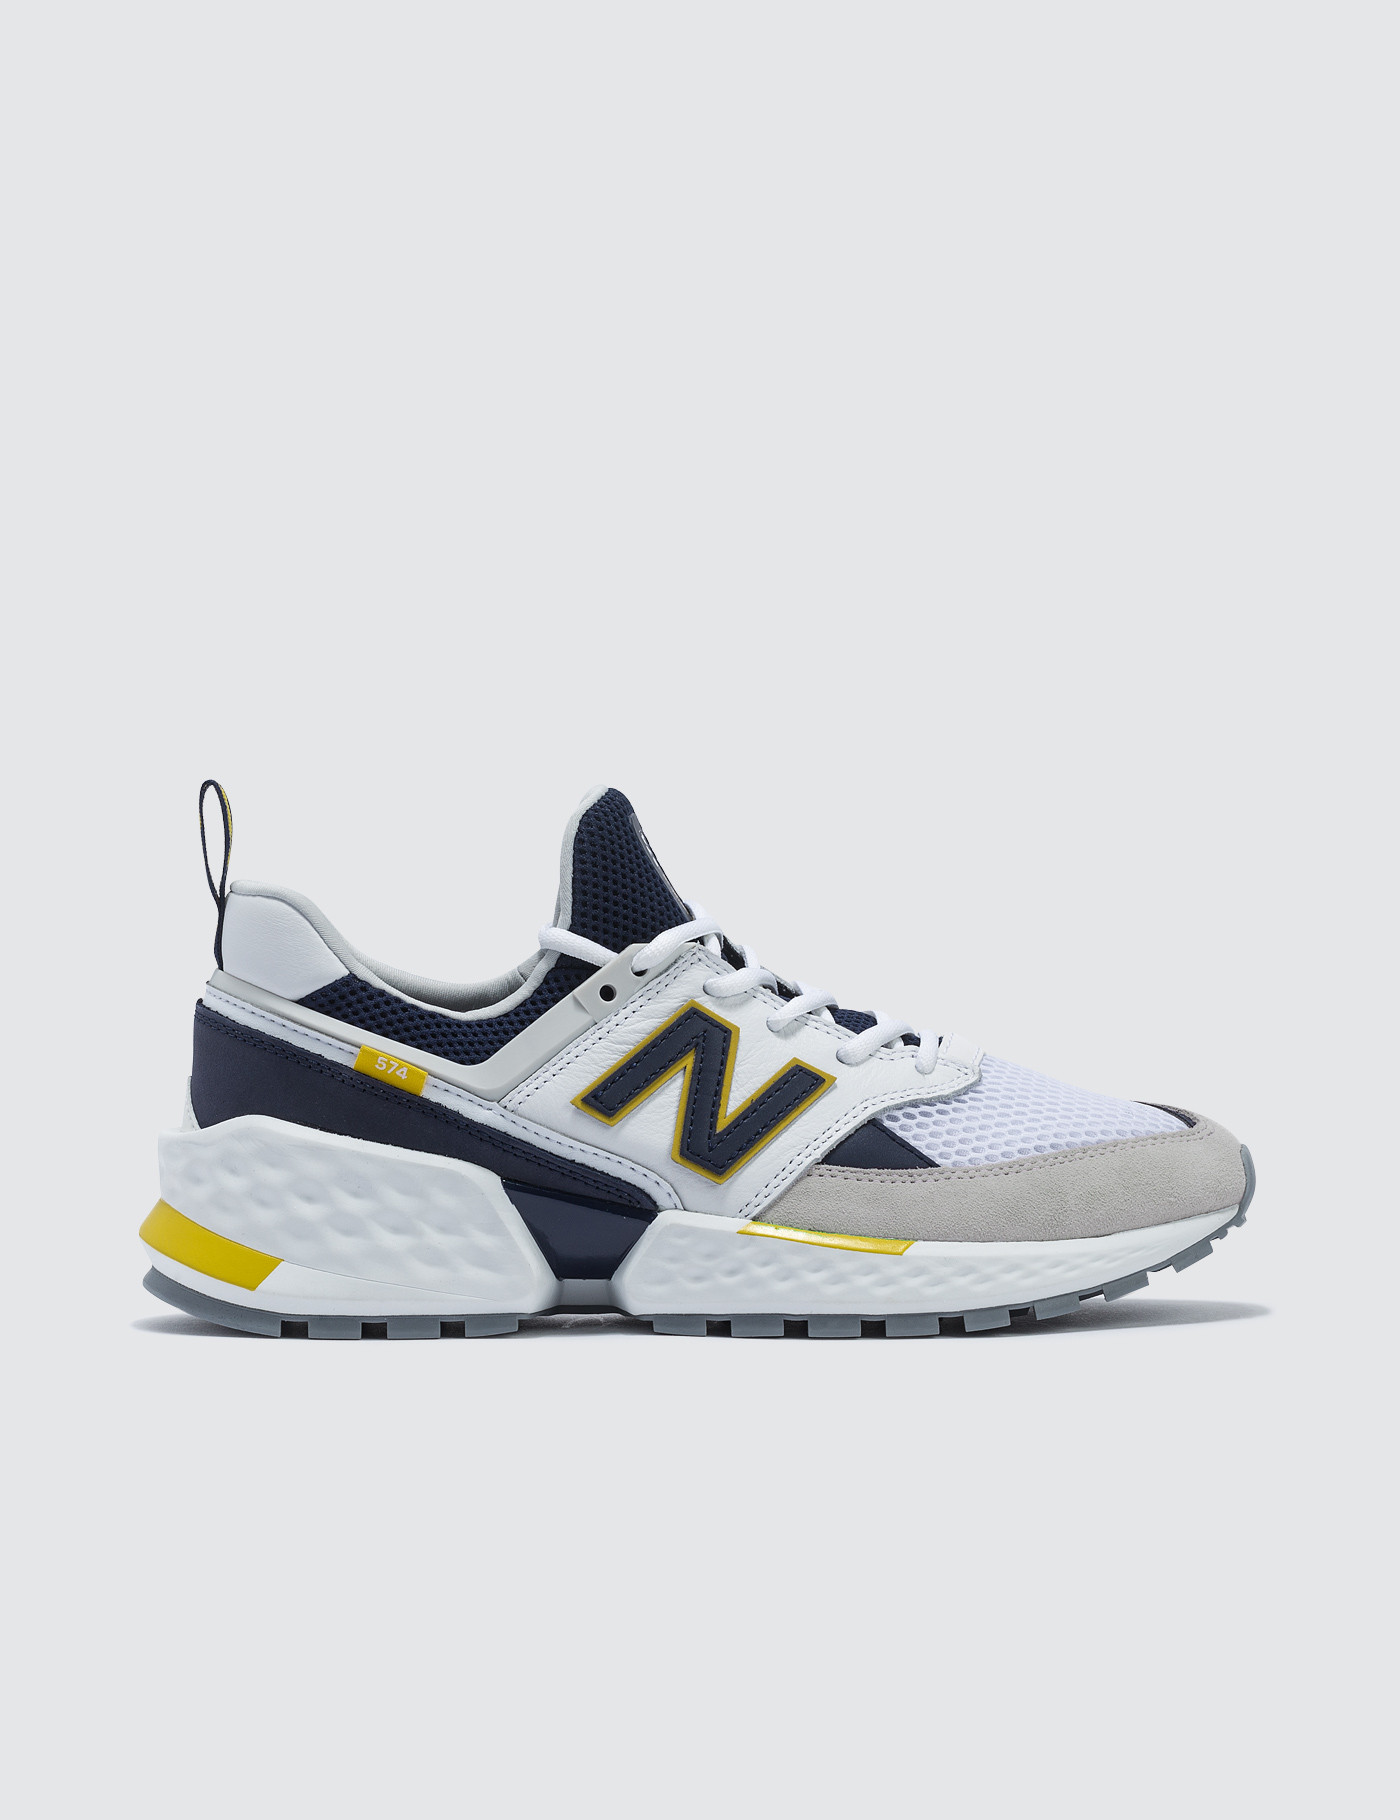 promo code 04a9a 0be47 574 V2, New Balance